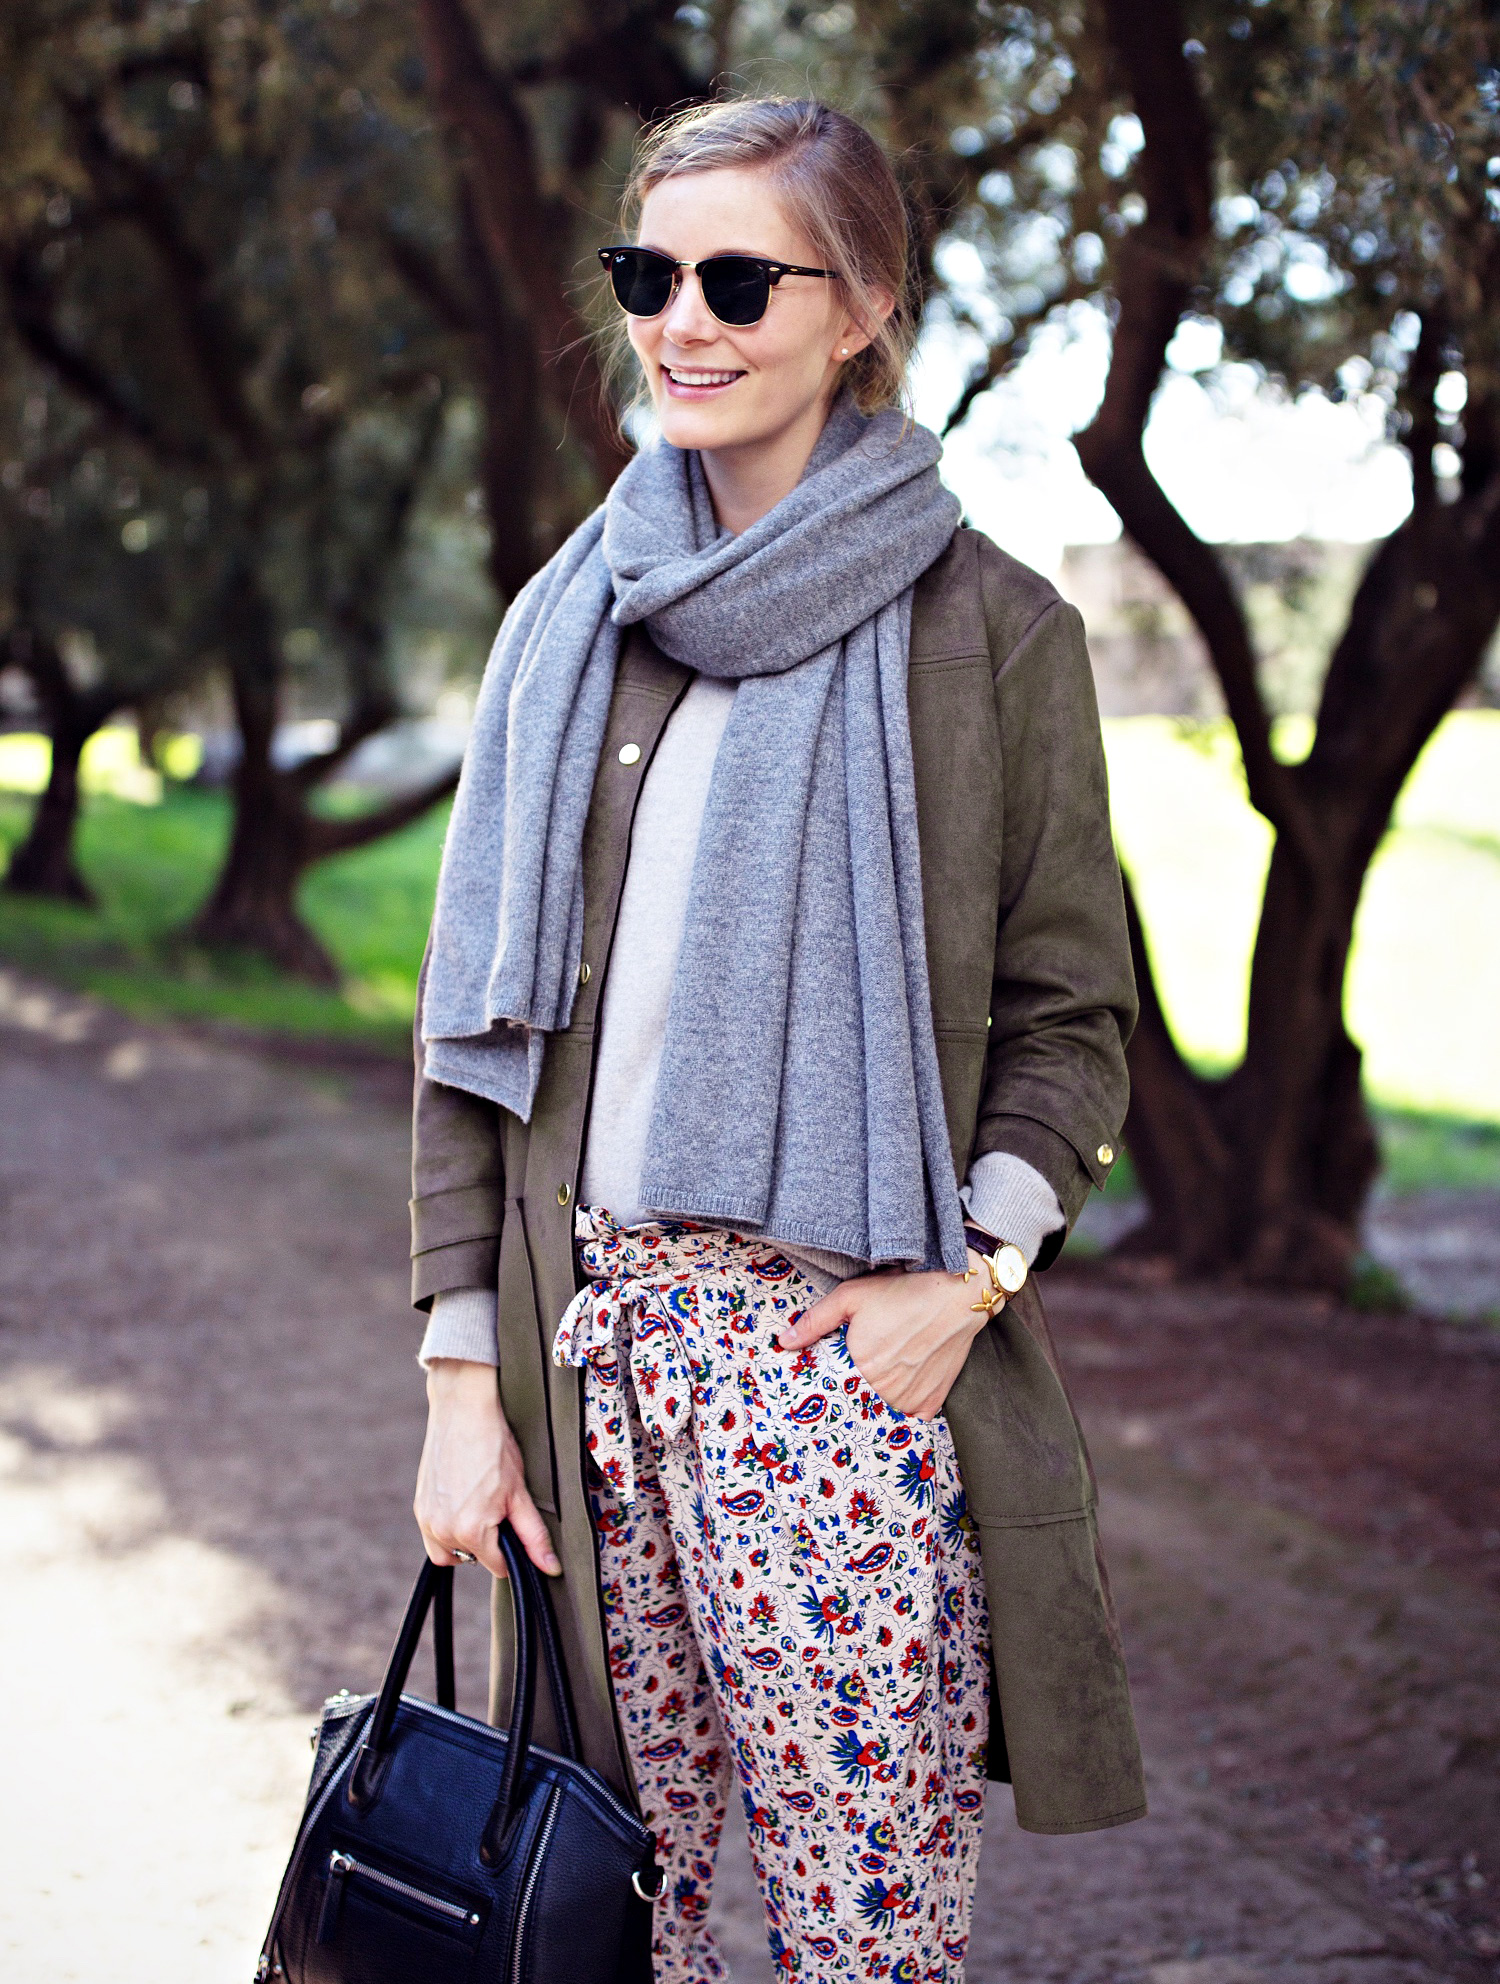 rayban, rayban clubmaster, heartmade, cashmere scarf, cashmere sweater, markberg, leather bag